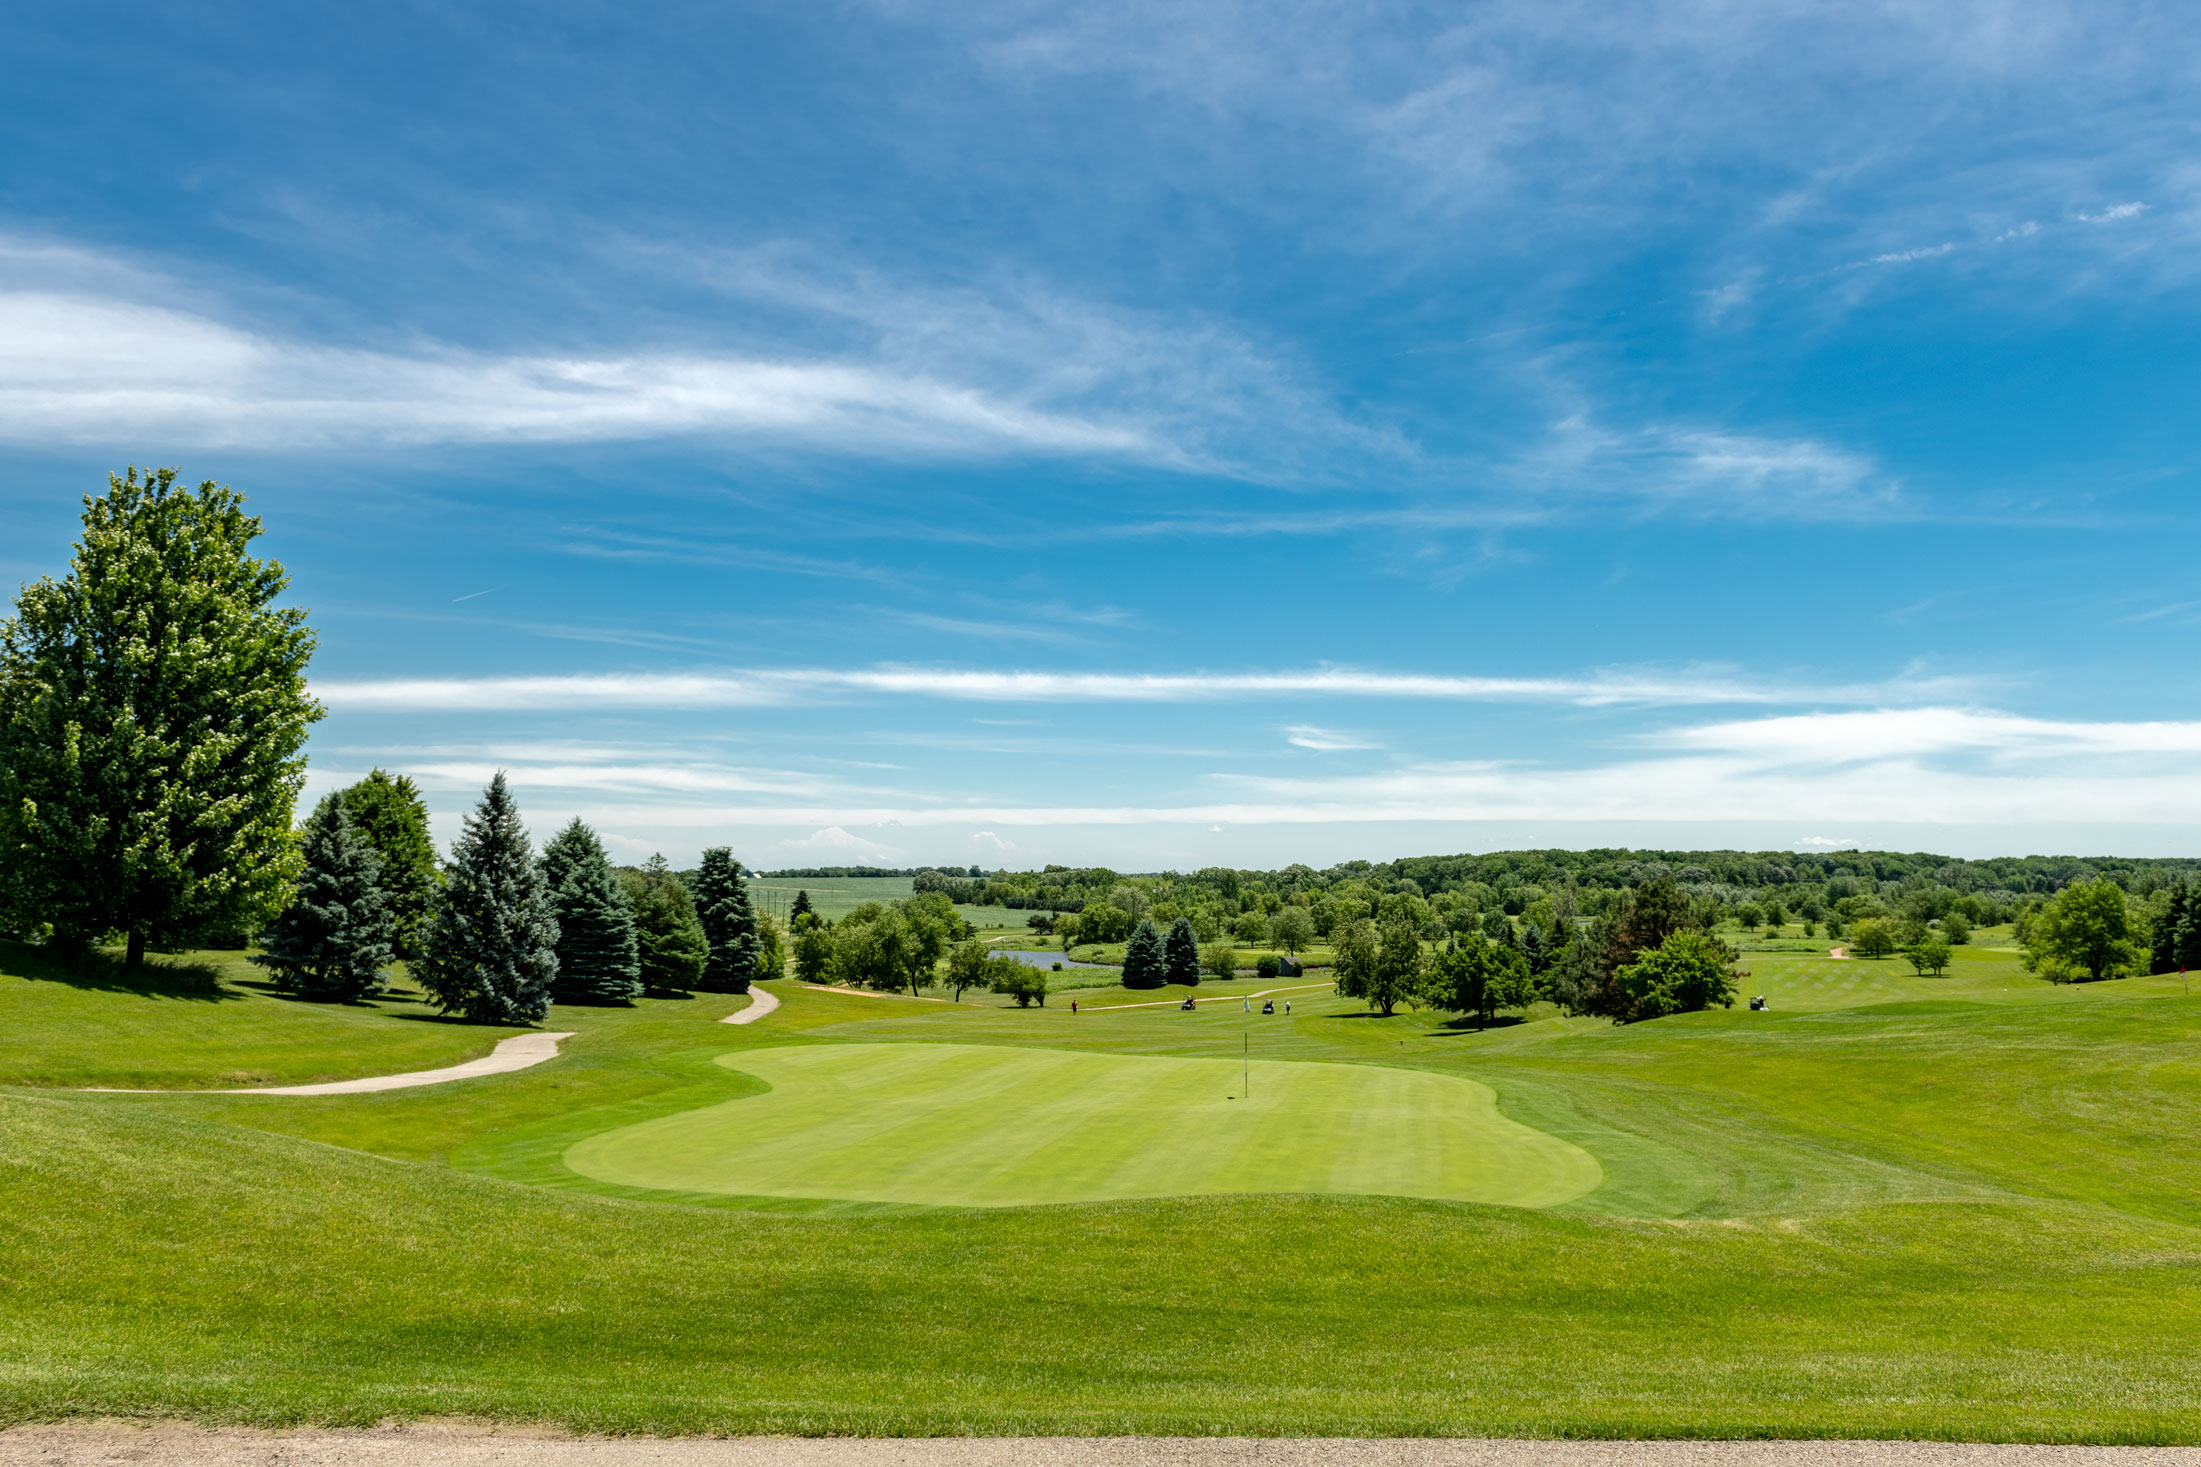 Hughes Creek Golf Course - Laura Gampfer Photography - Elburn, IL